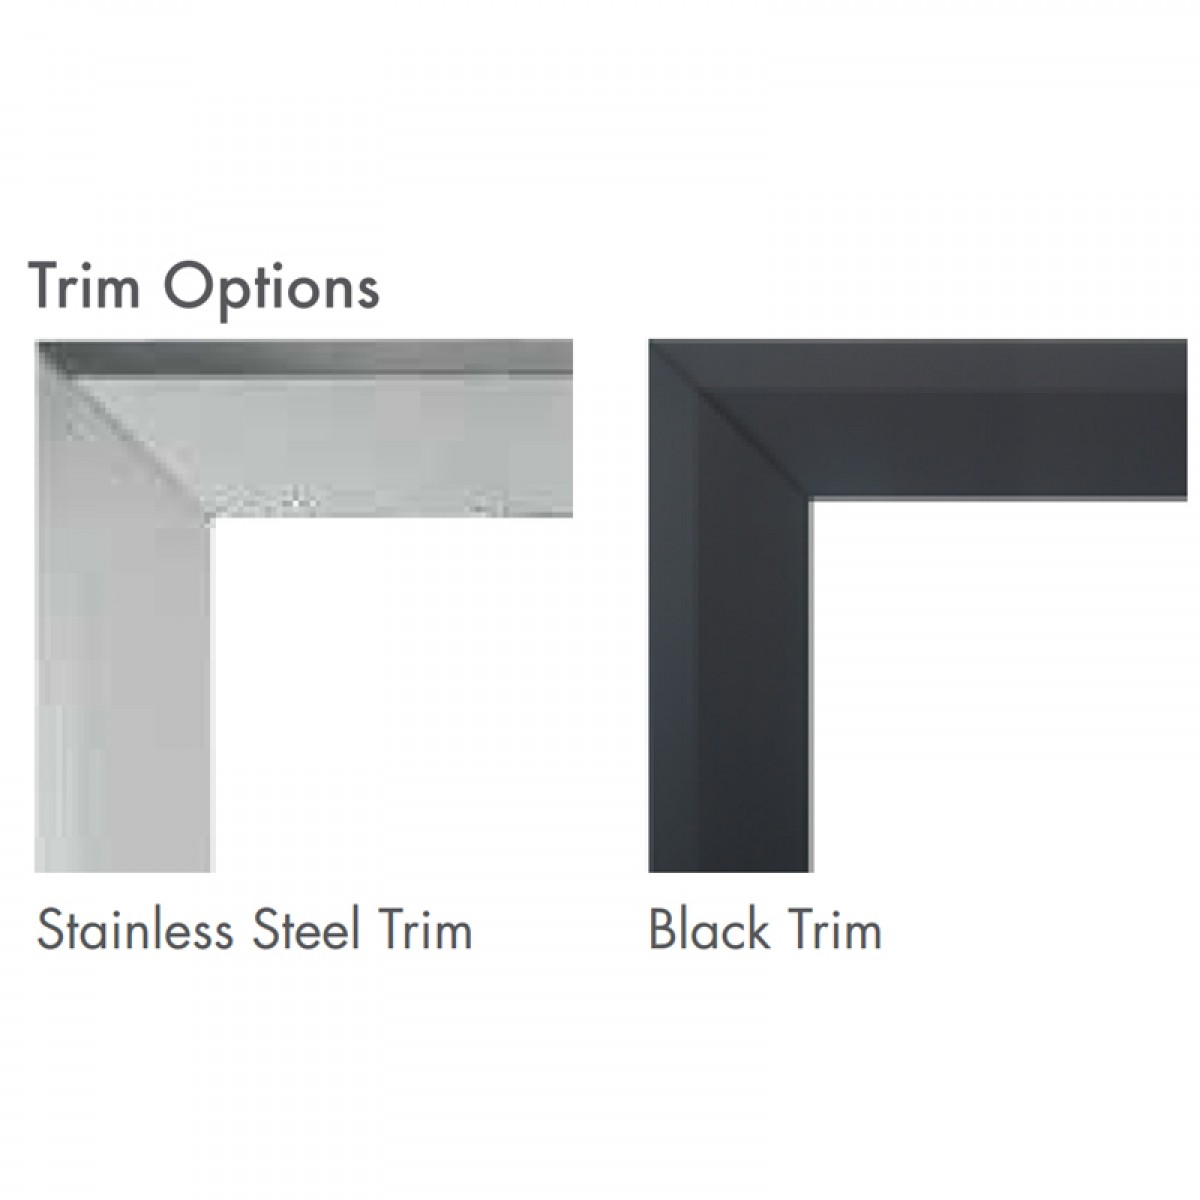 Find discount prices on the Majestic SSTKM42C Stainless Steel Trim Kit Curved Design fits 600DVM/MCUF42D and other Majestic products at iBuyFireplaces.com.